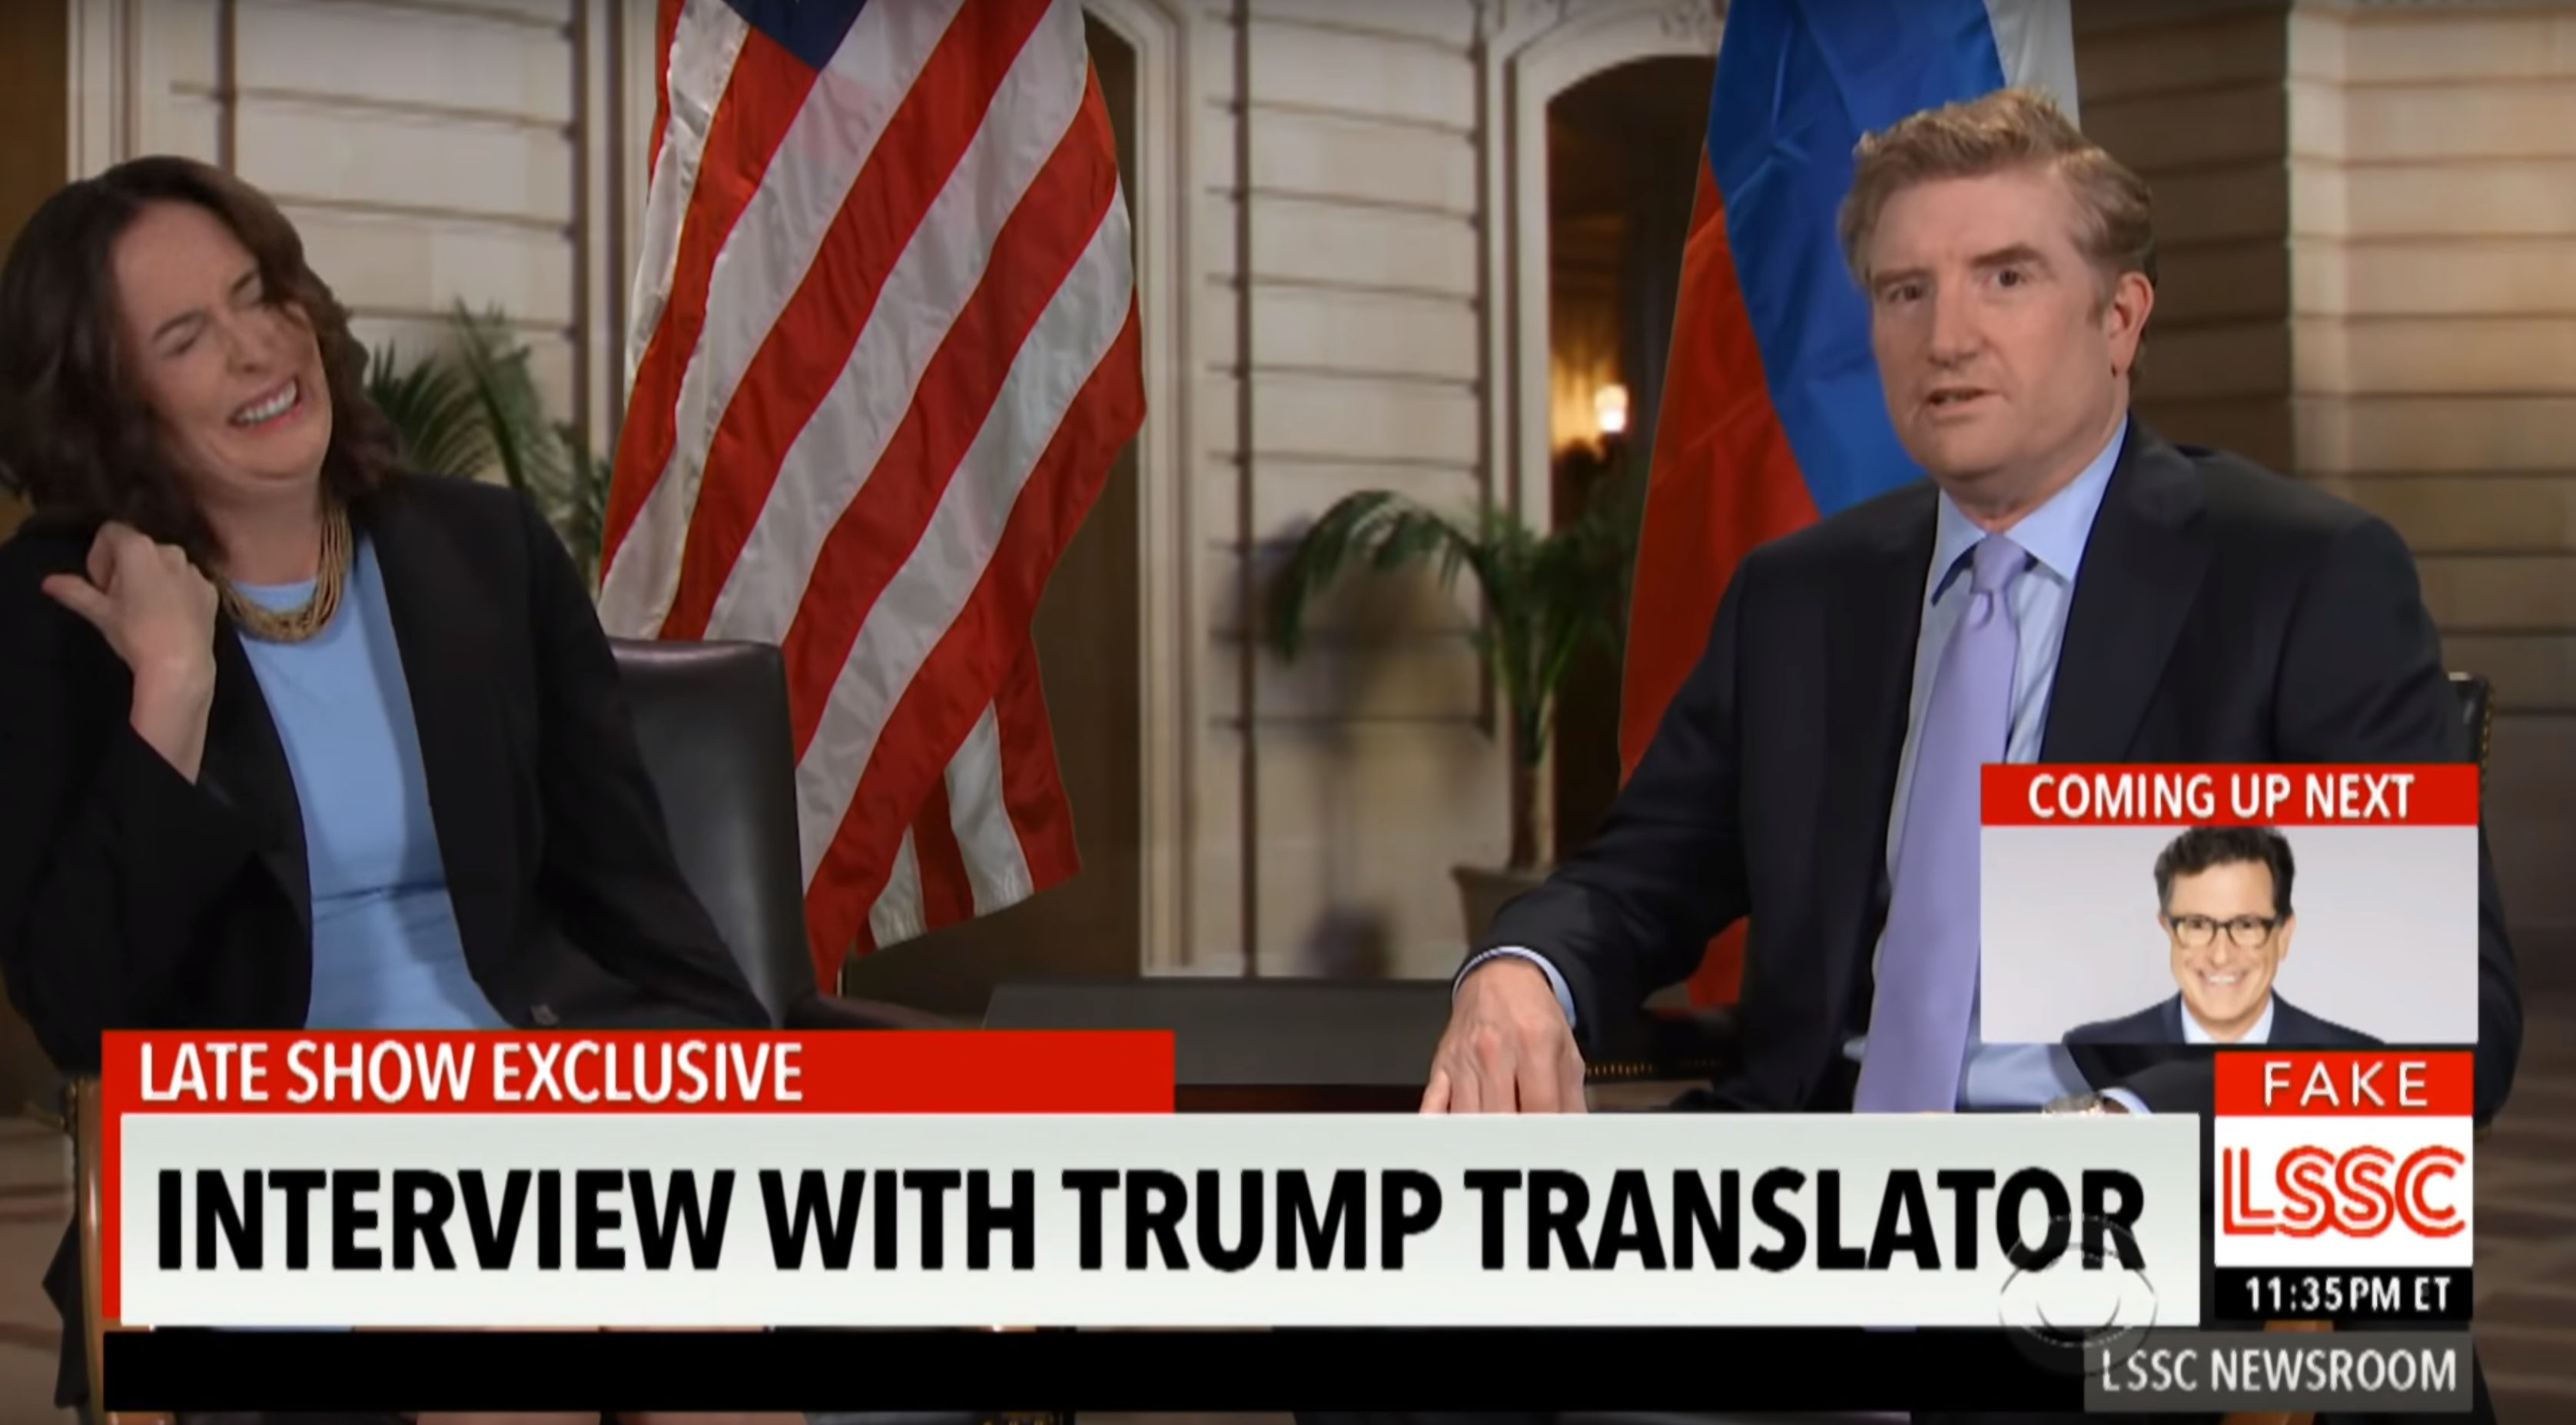 Colbert Nabs The First Interview With Trump's Russian Translator